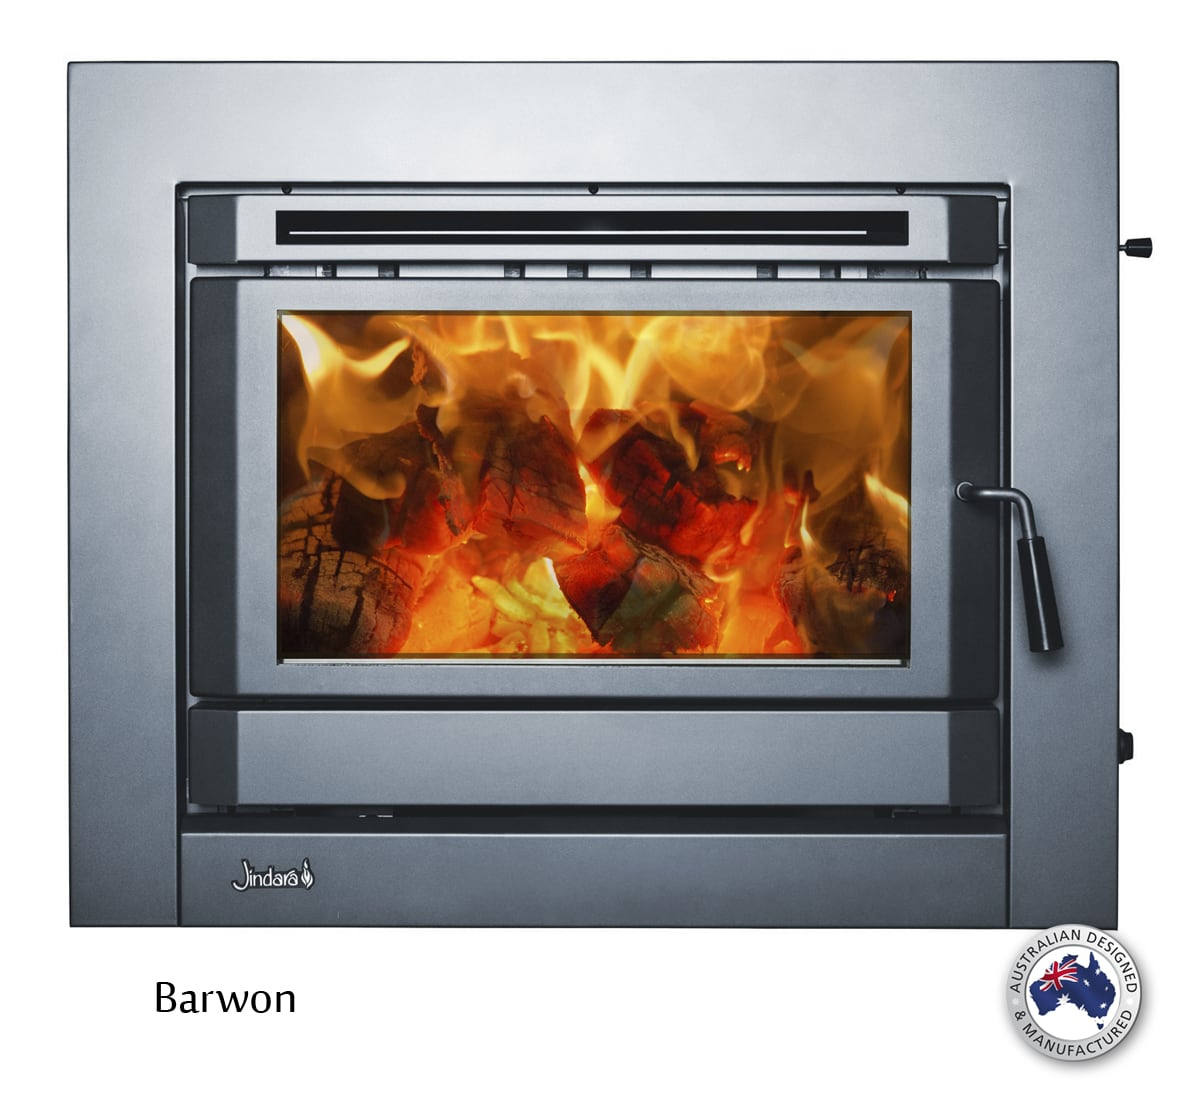 Barwon Wood Heater Insert